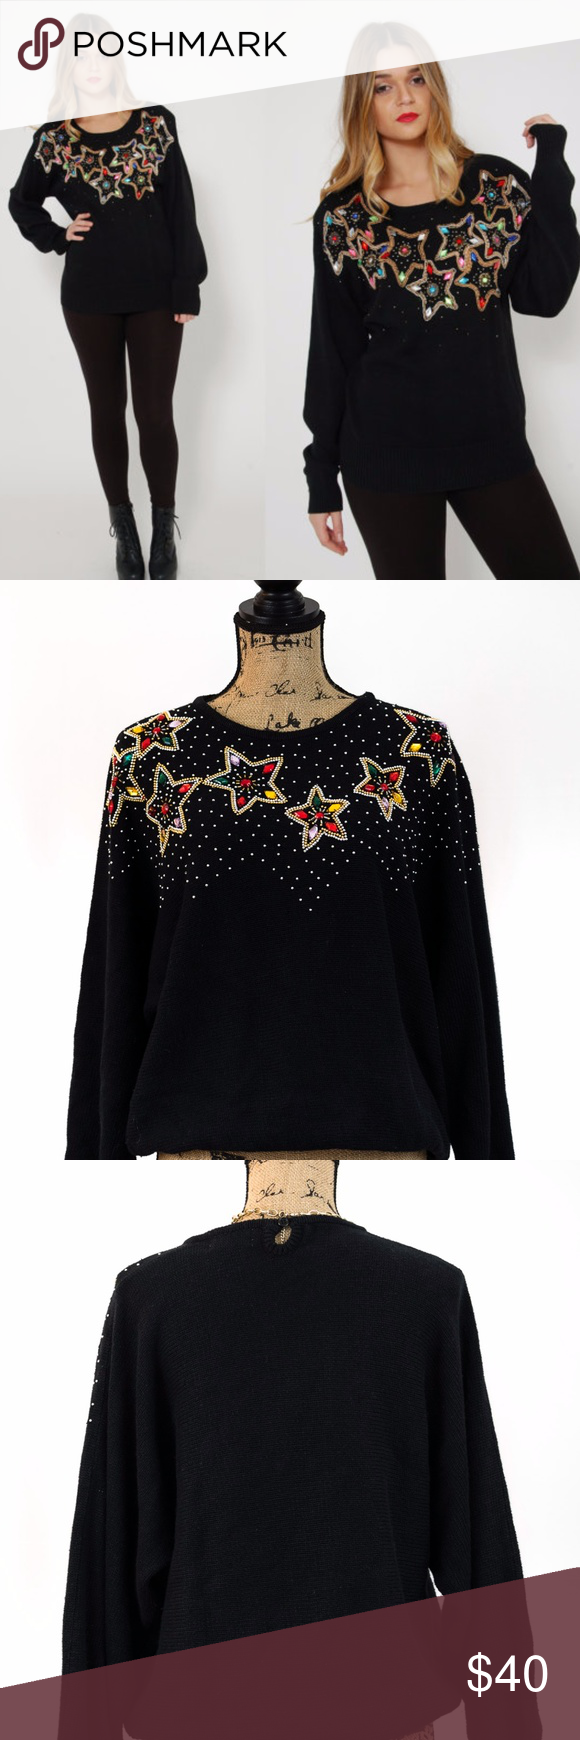 Us star rhinestone sweater ugly christmas party wear sportswear